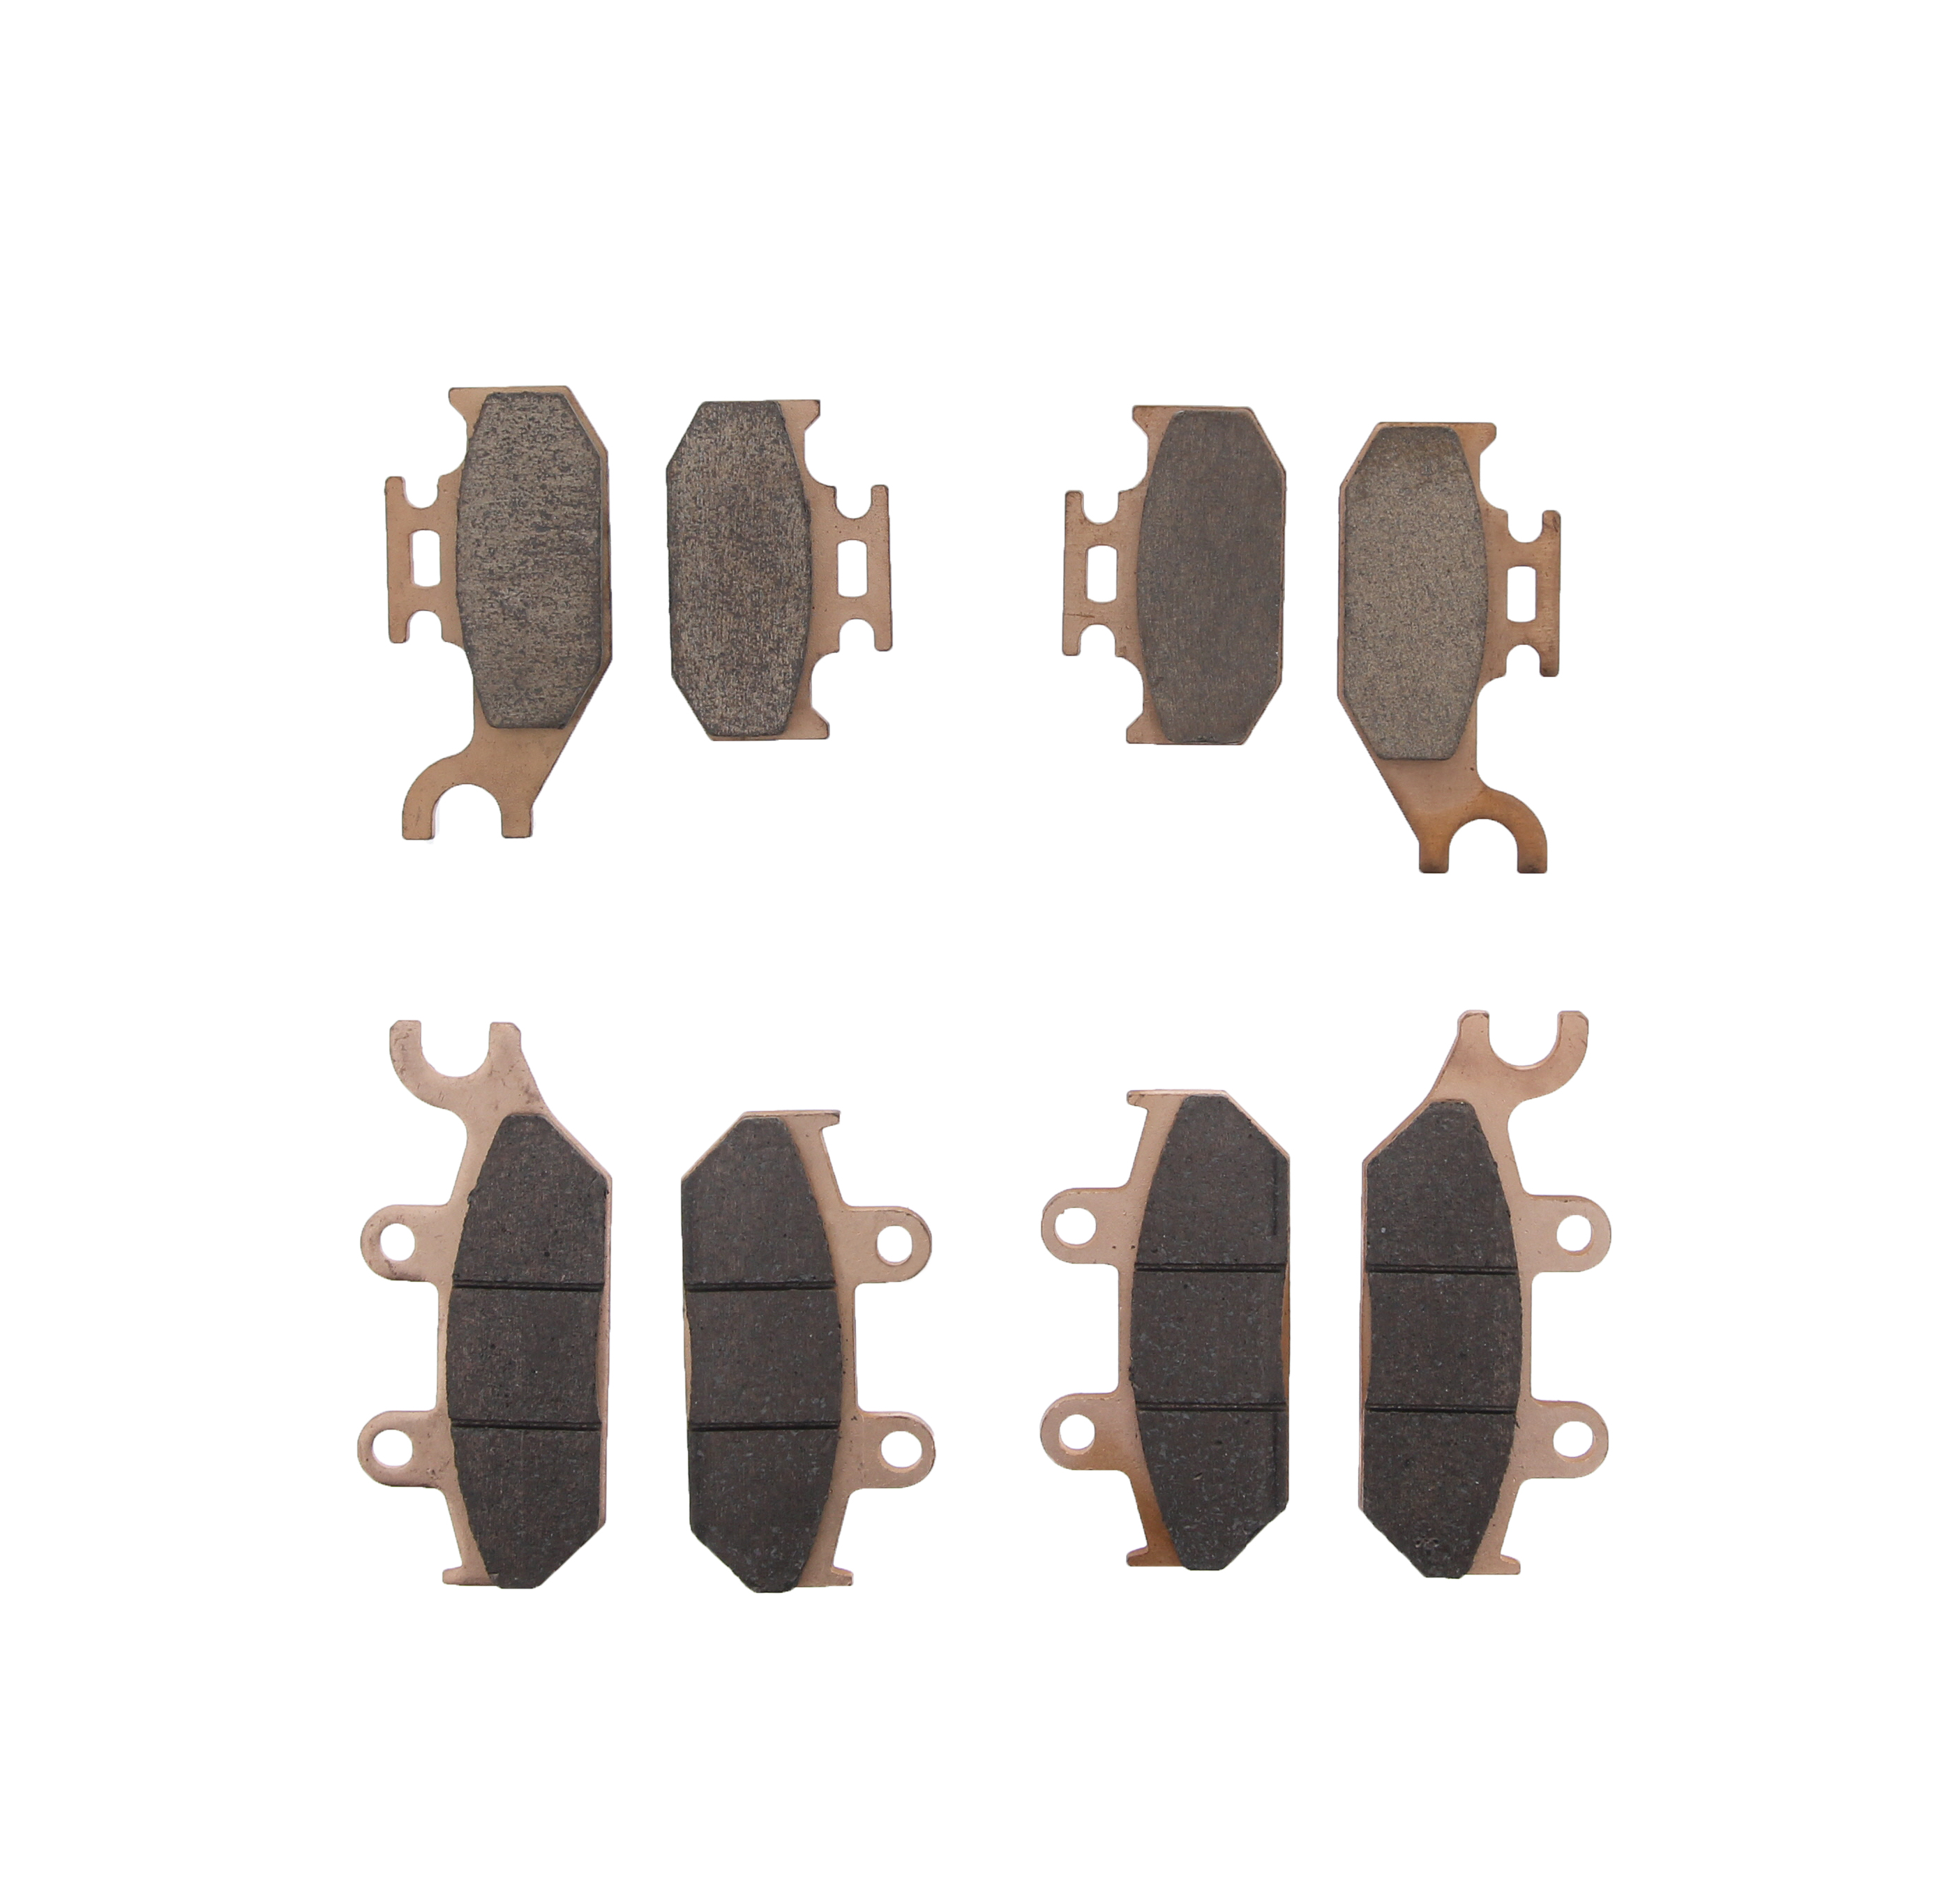 Brake Pads for Can-Am Outlander XMR 650 2013-19 Front /& Rear Brakes Race-Driven